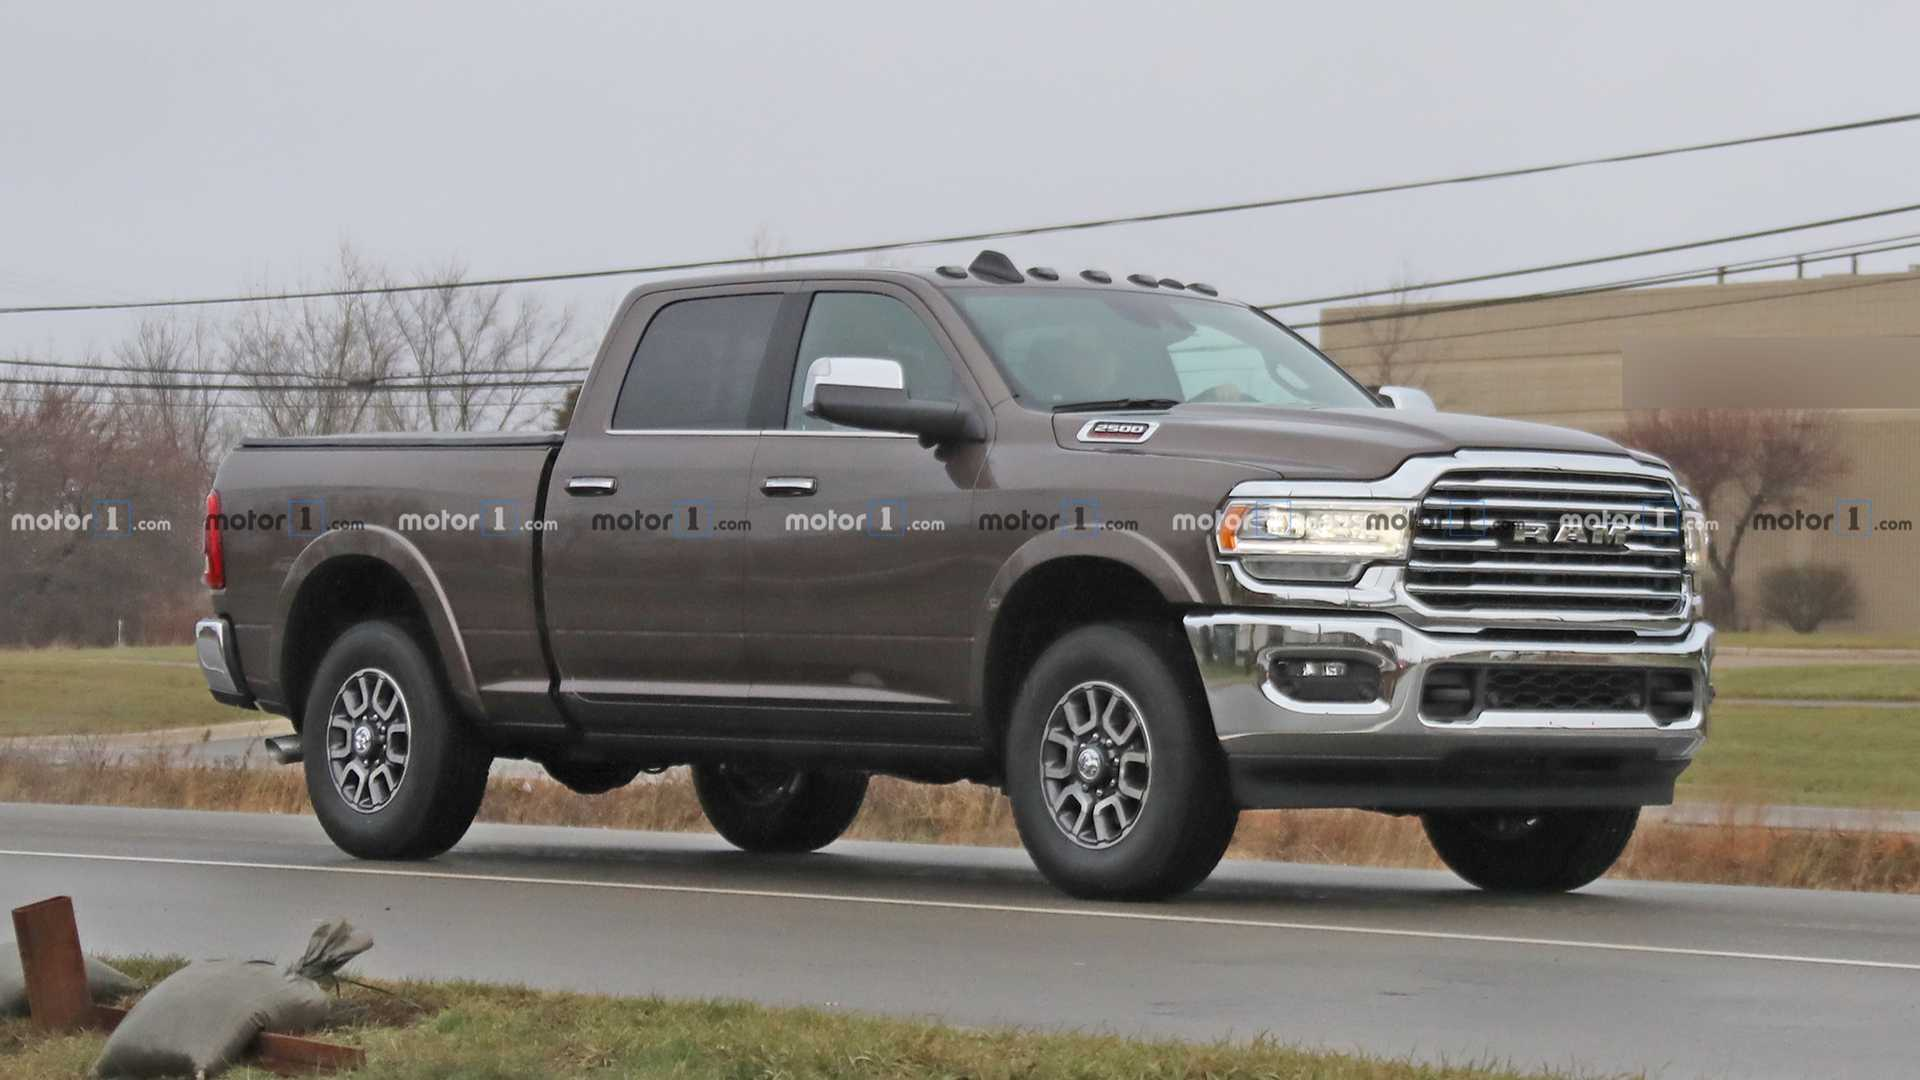 85 A 2020 Dodge Ram Pickup Release Date And Concept